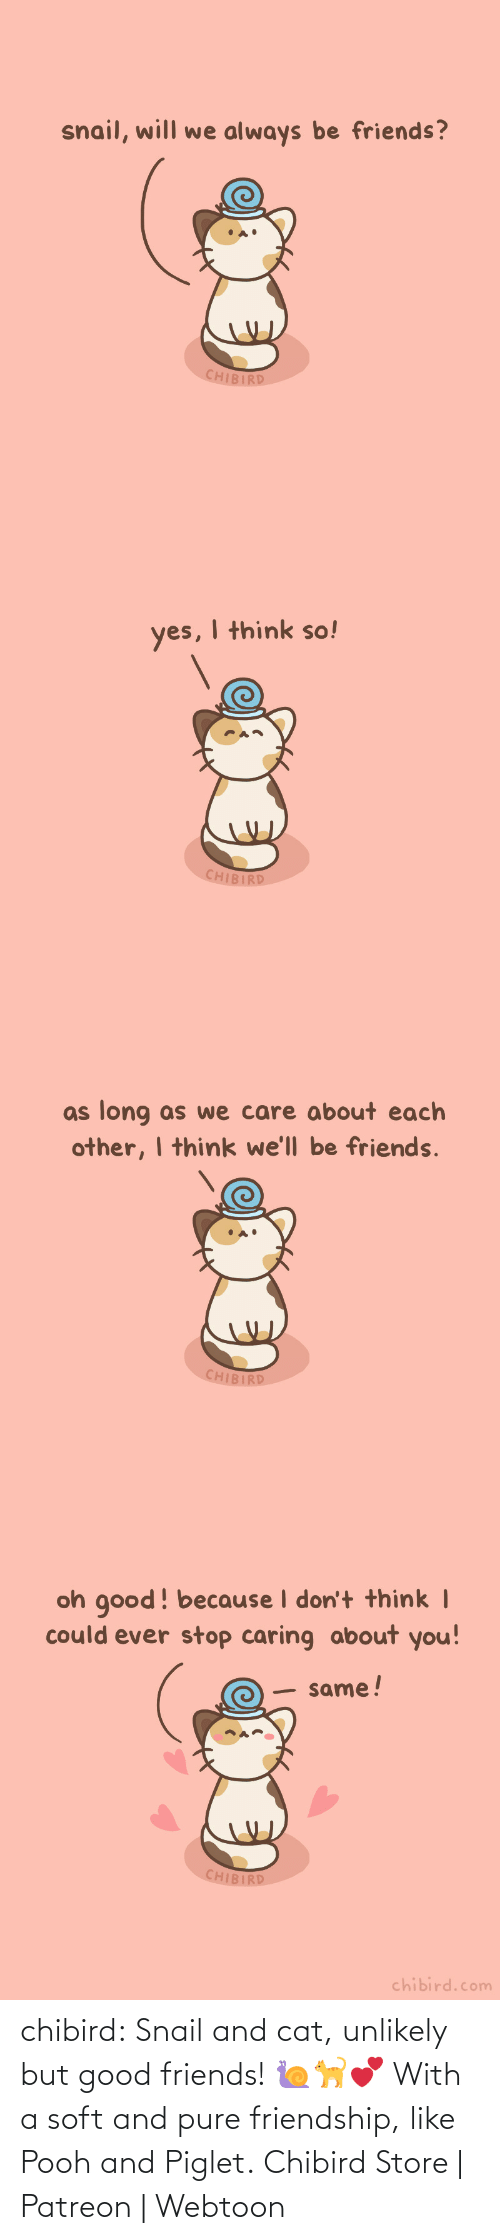 pooh: chibird:  Snail and cat, unlikely but good friends! 🐌🐈💕 With a soft and pure friendship, like Pooh and Piglet.  Chibird Store | Patreon | Webtoon